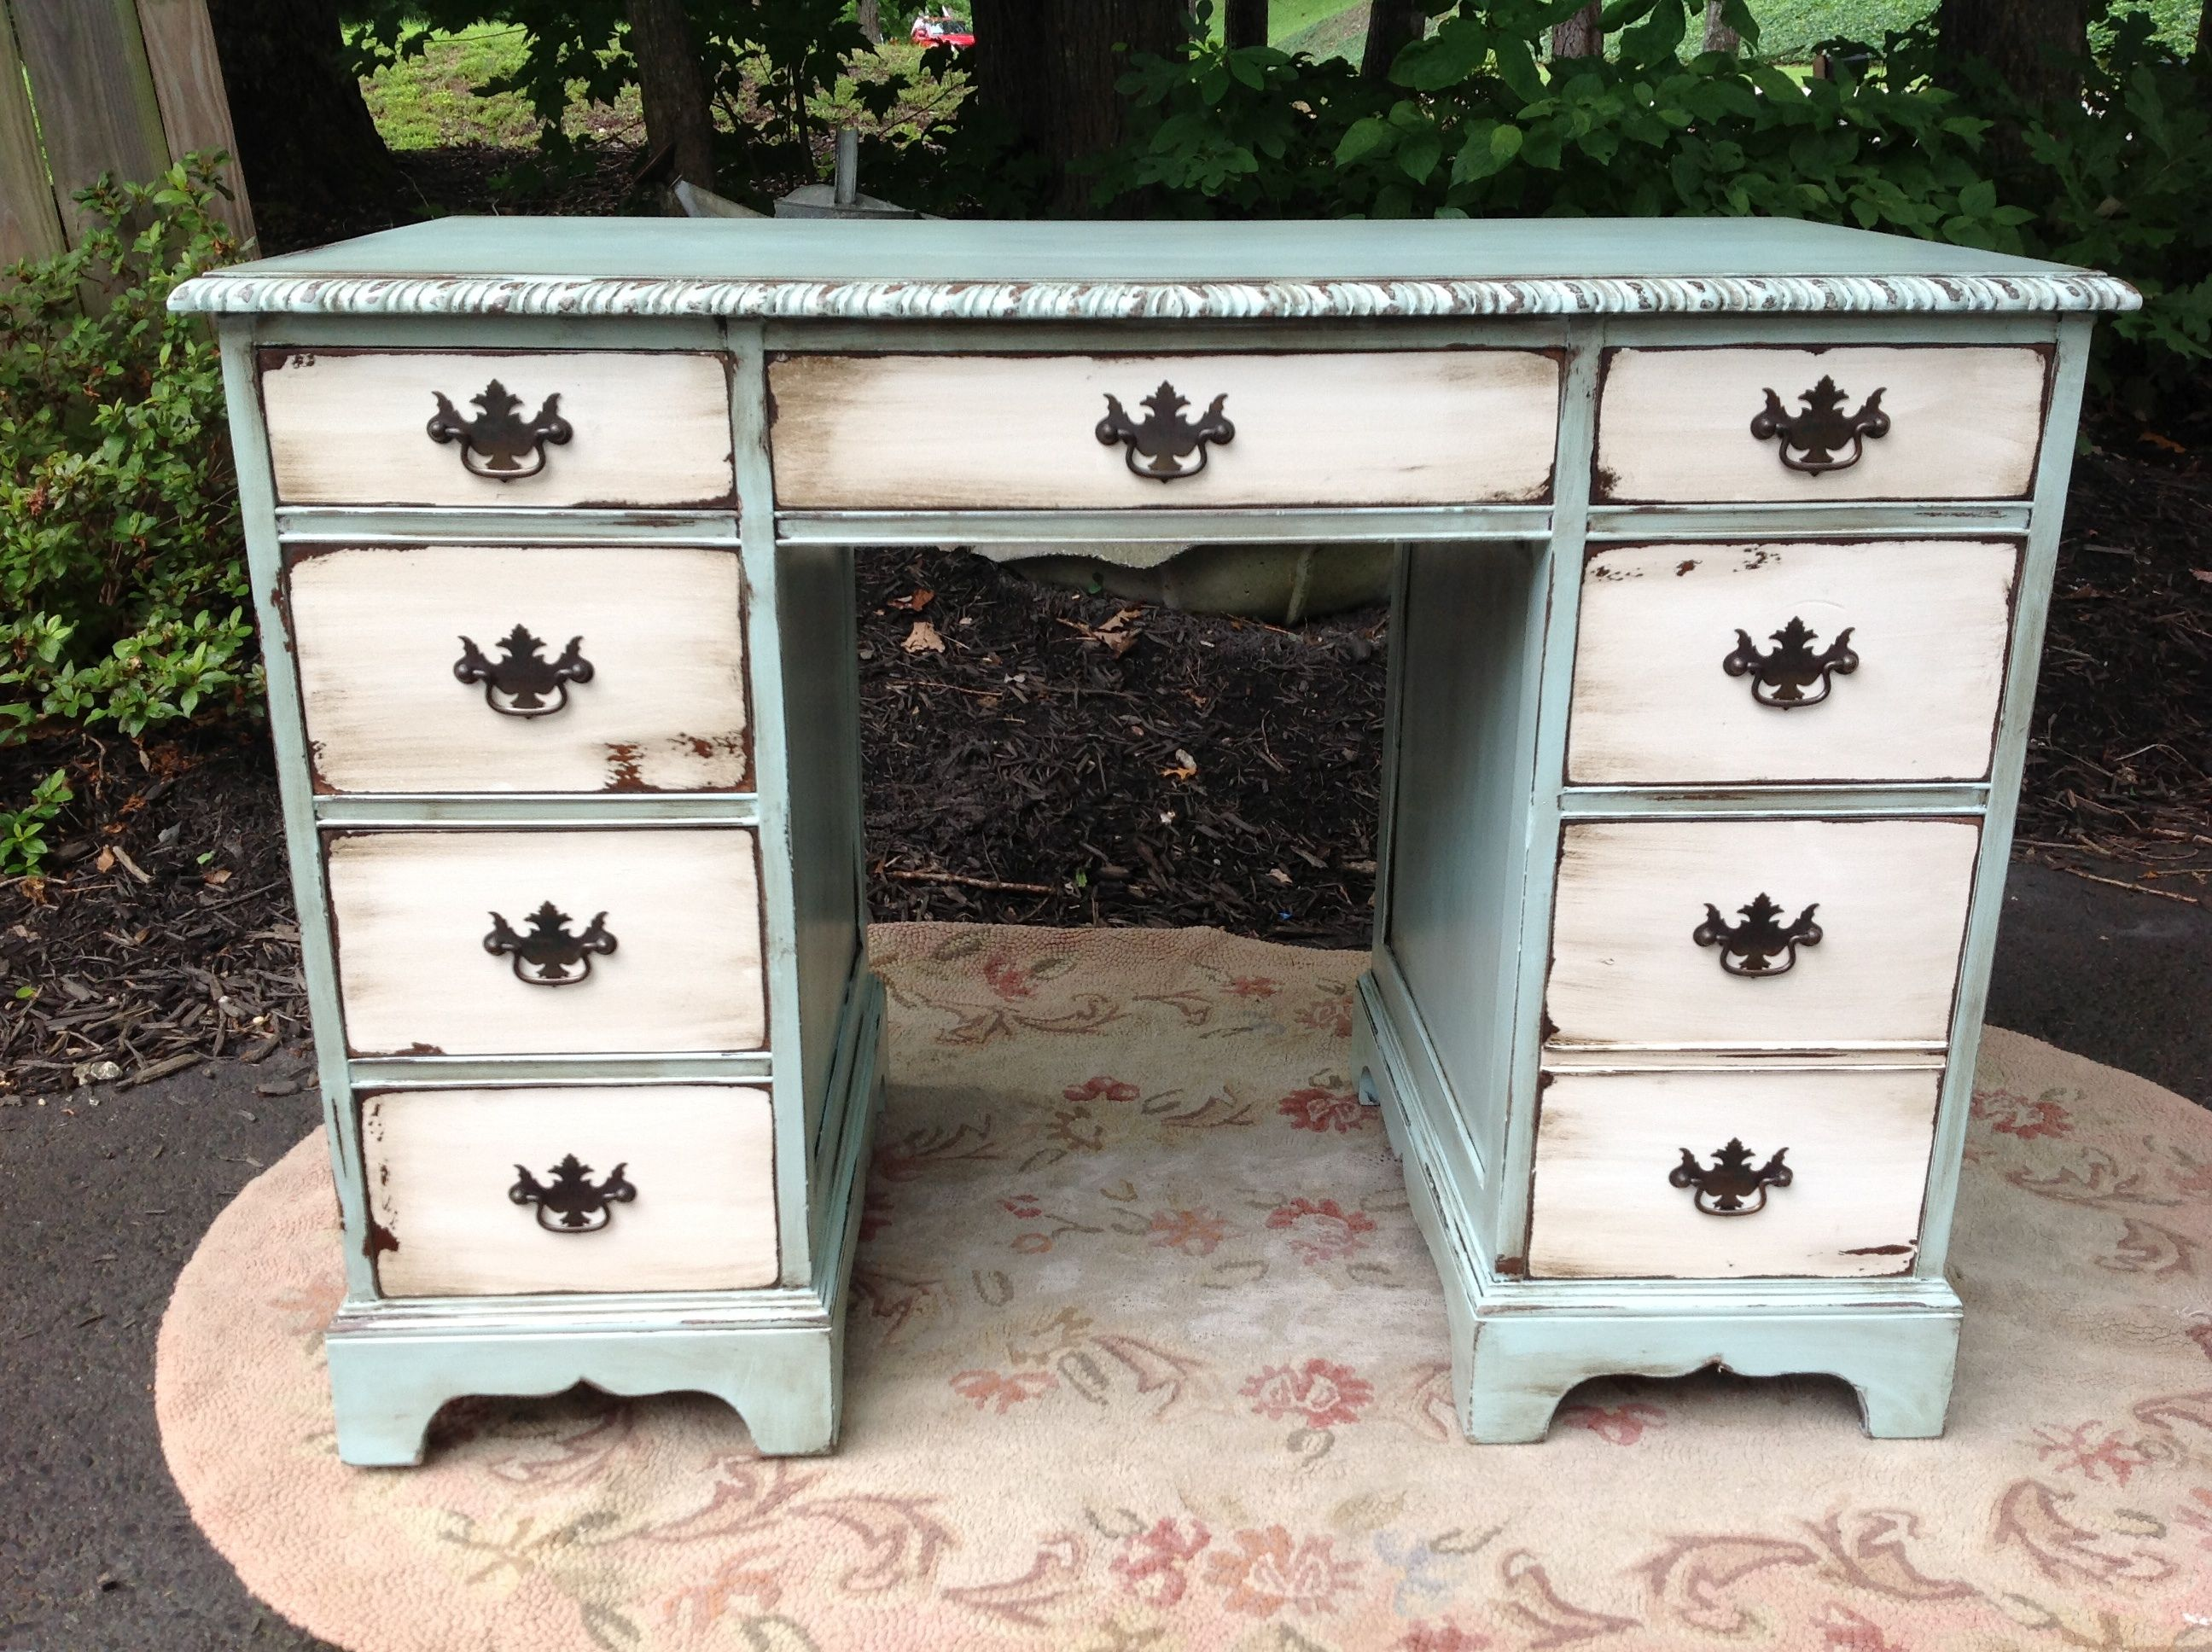 Designed, Hand painted, aged & glazed by Gracie's Cottage